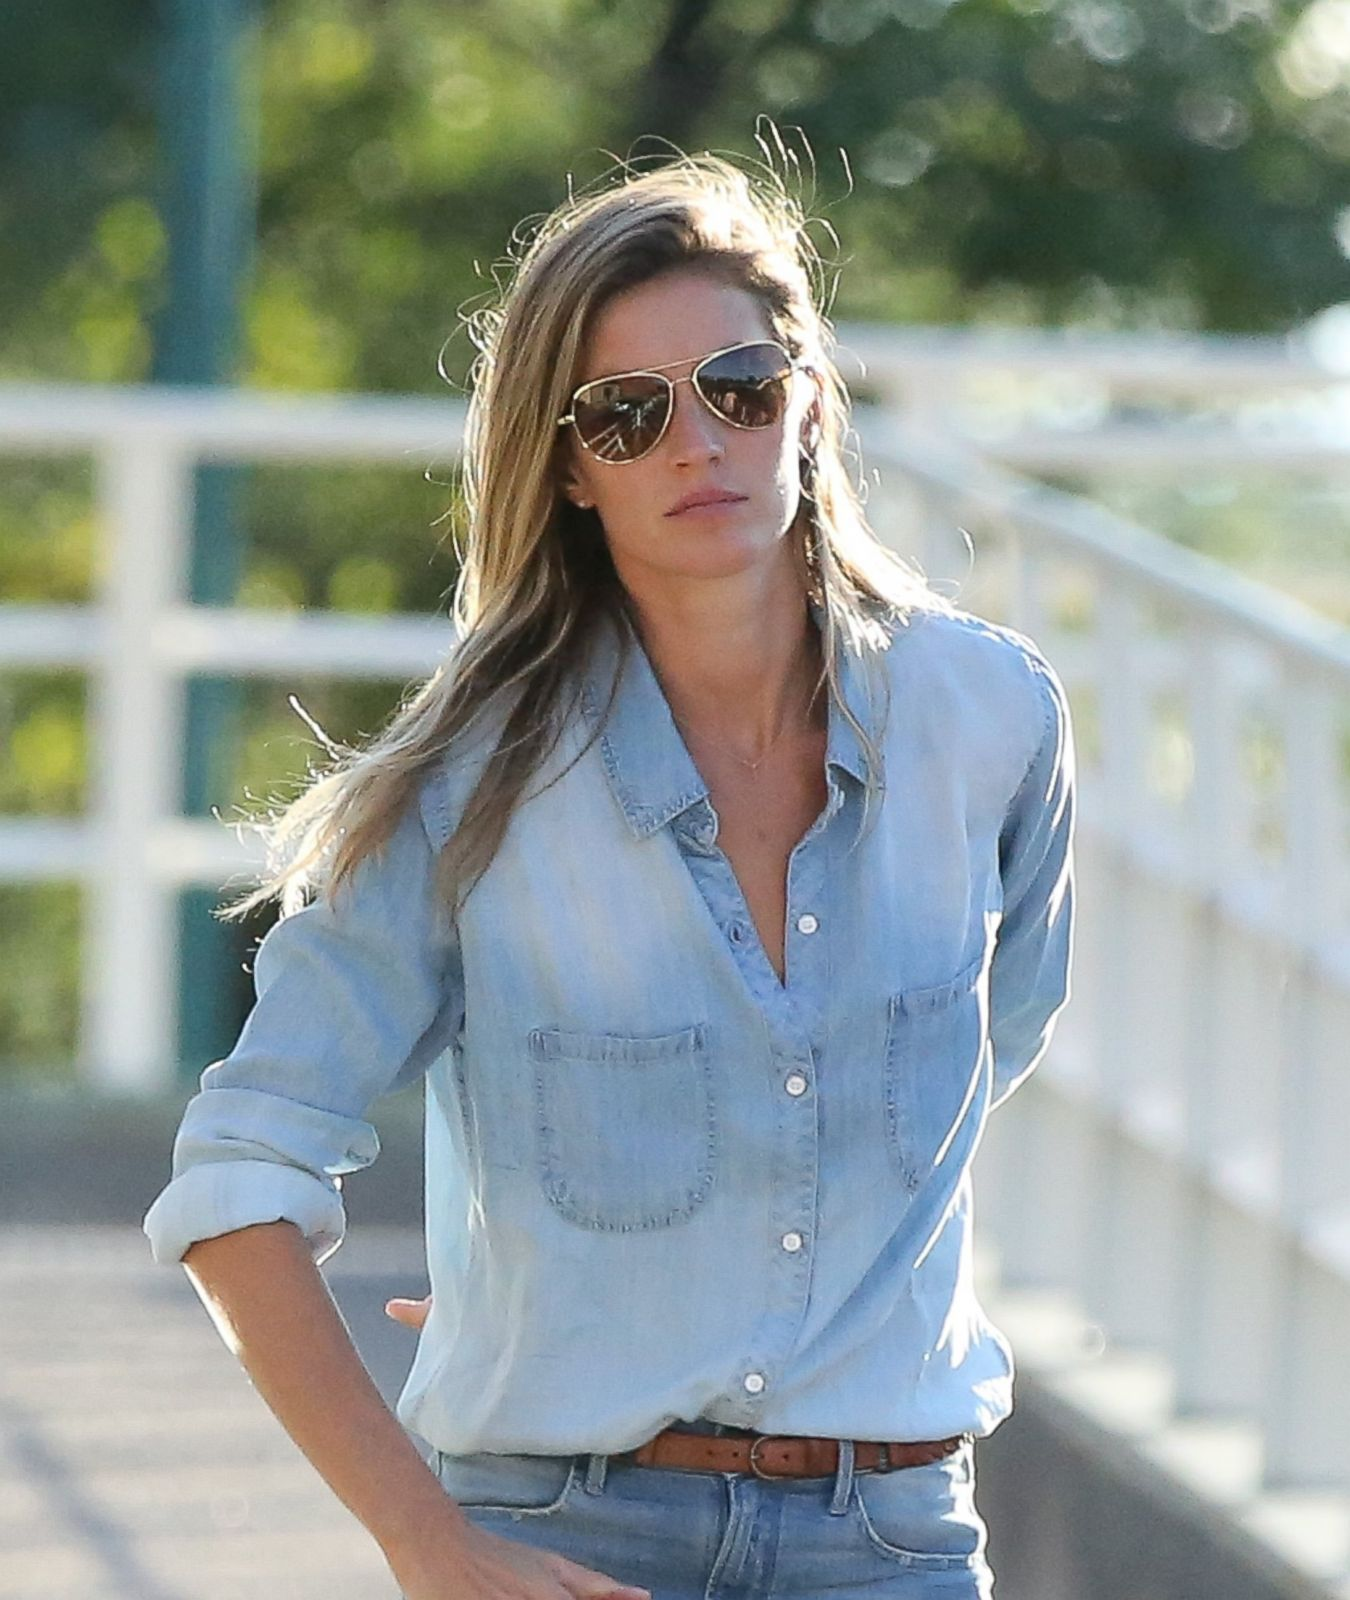 the gallery for gt gisele bundchen casual style 2014